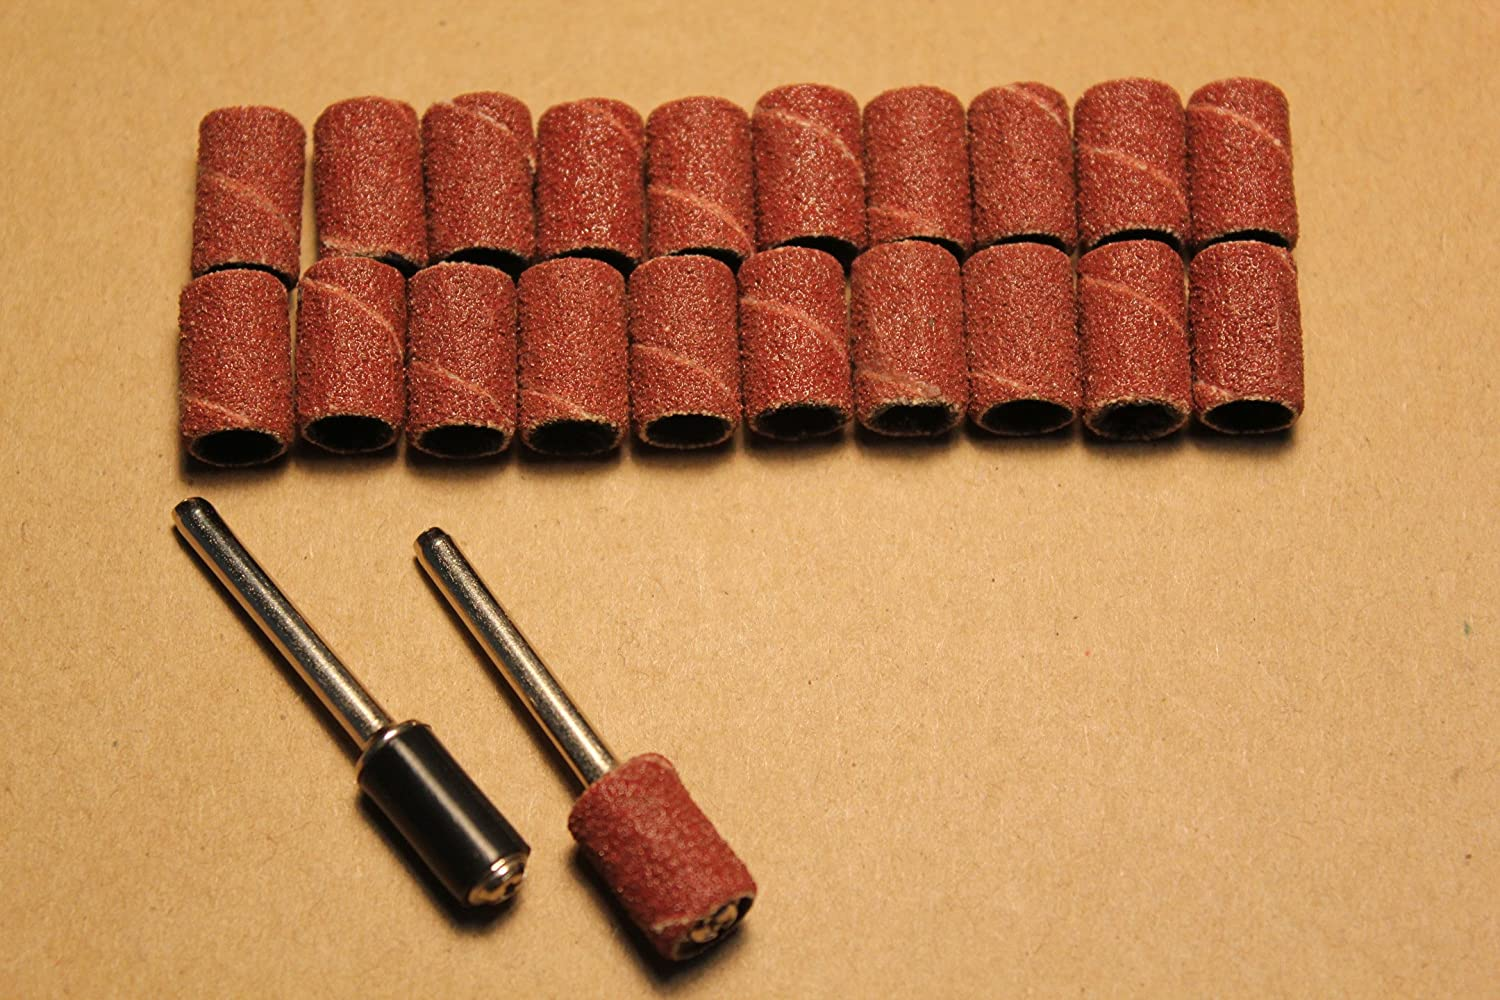 20 X Sand Drums Grit 120 with 2 Mandrels Rotary Tool (Small) MOOOONSTAR.CN